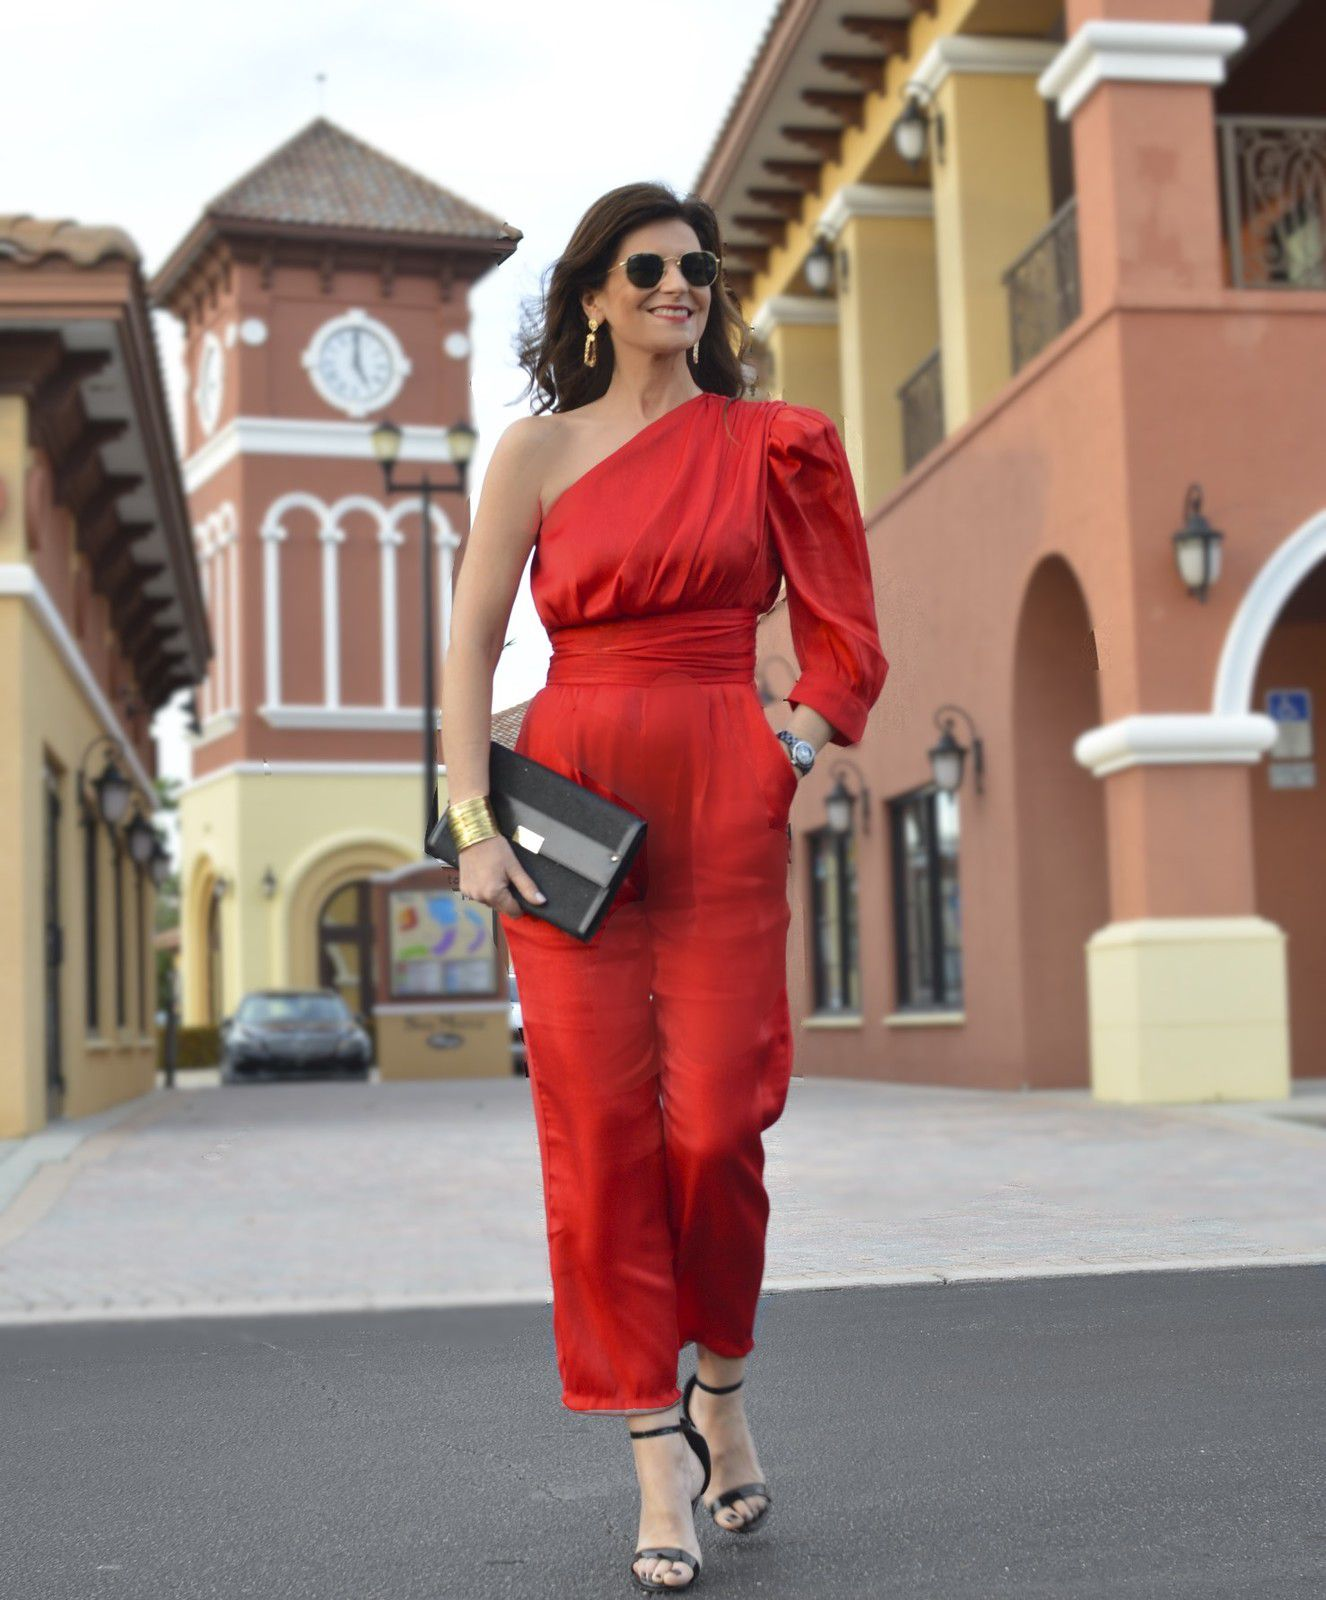 Red jumpsuit for Valentine's, Galentine's or a day to yourself